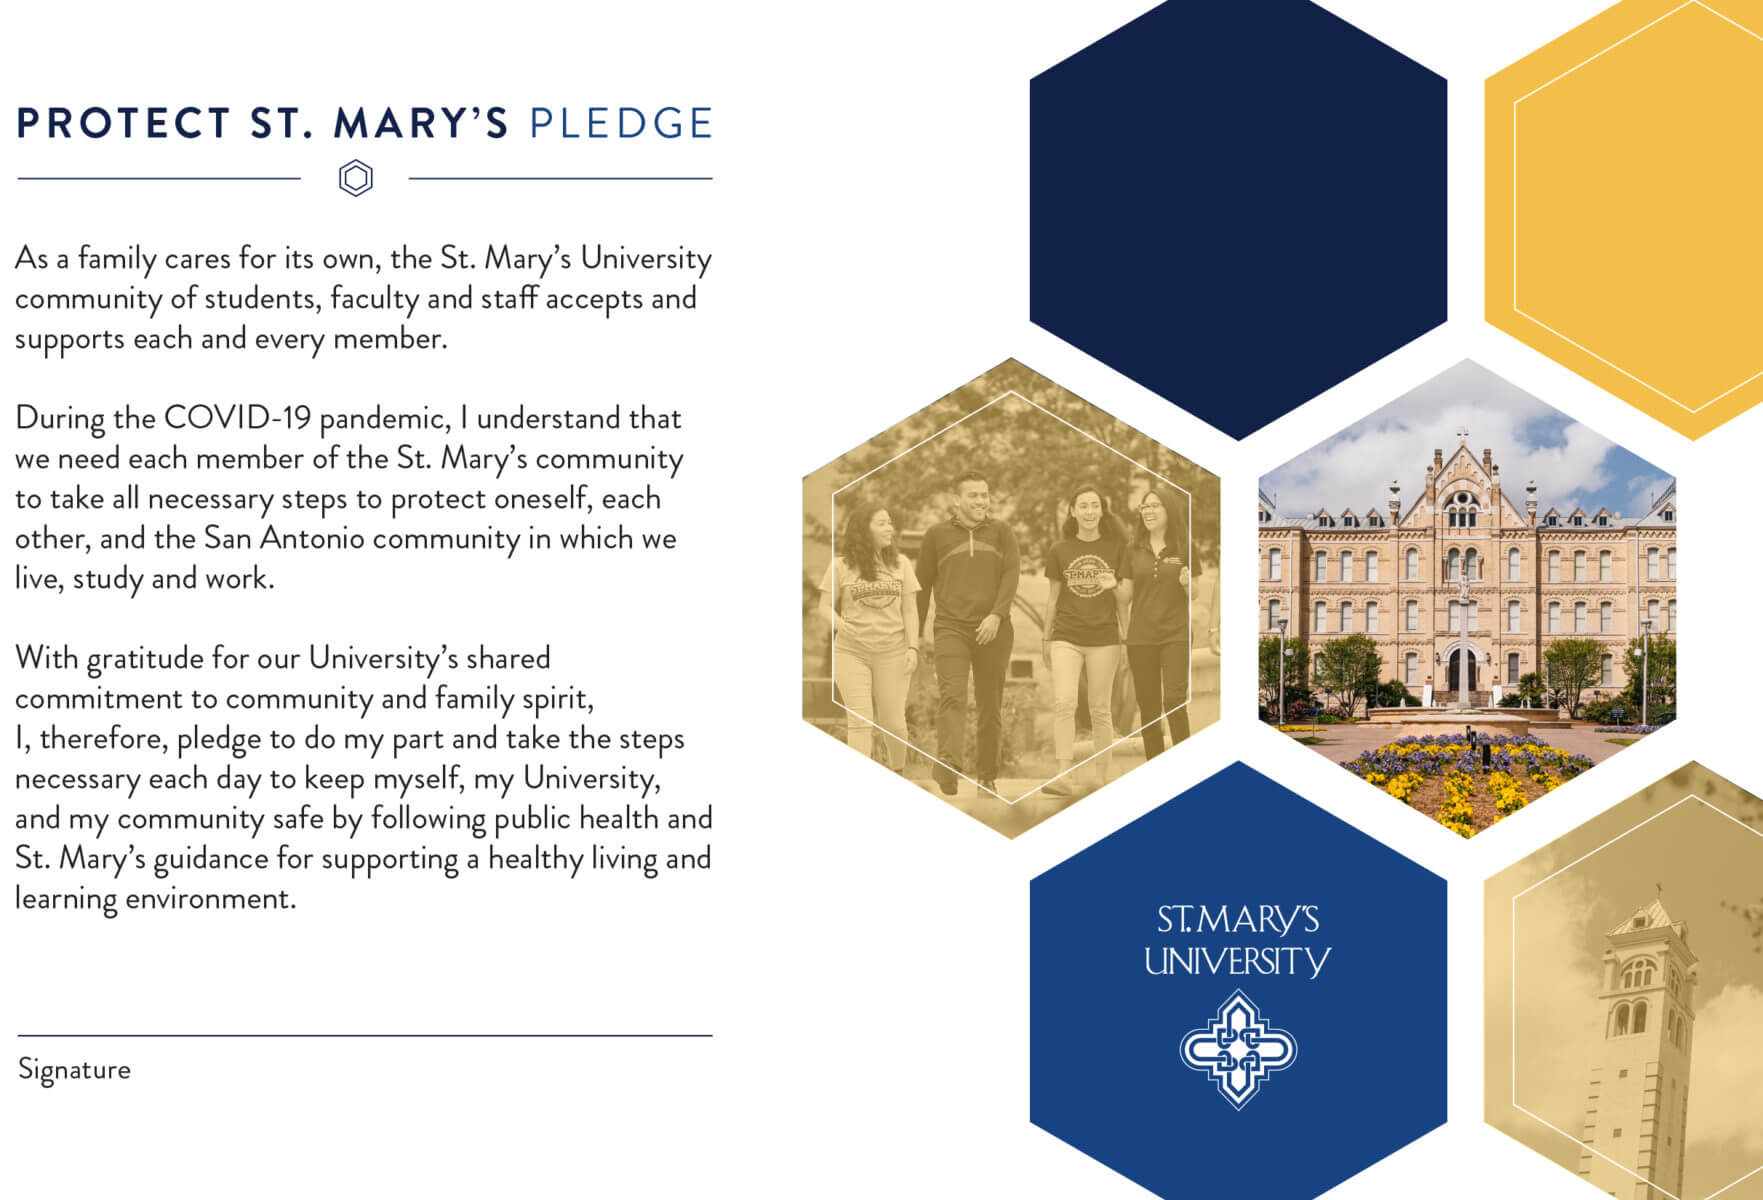 Protect St. Mary's Pledge text